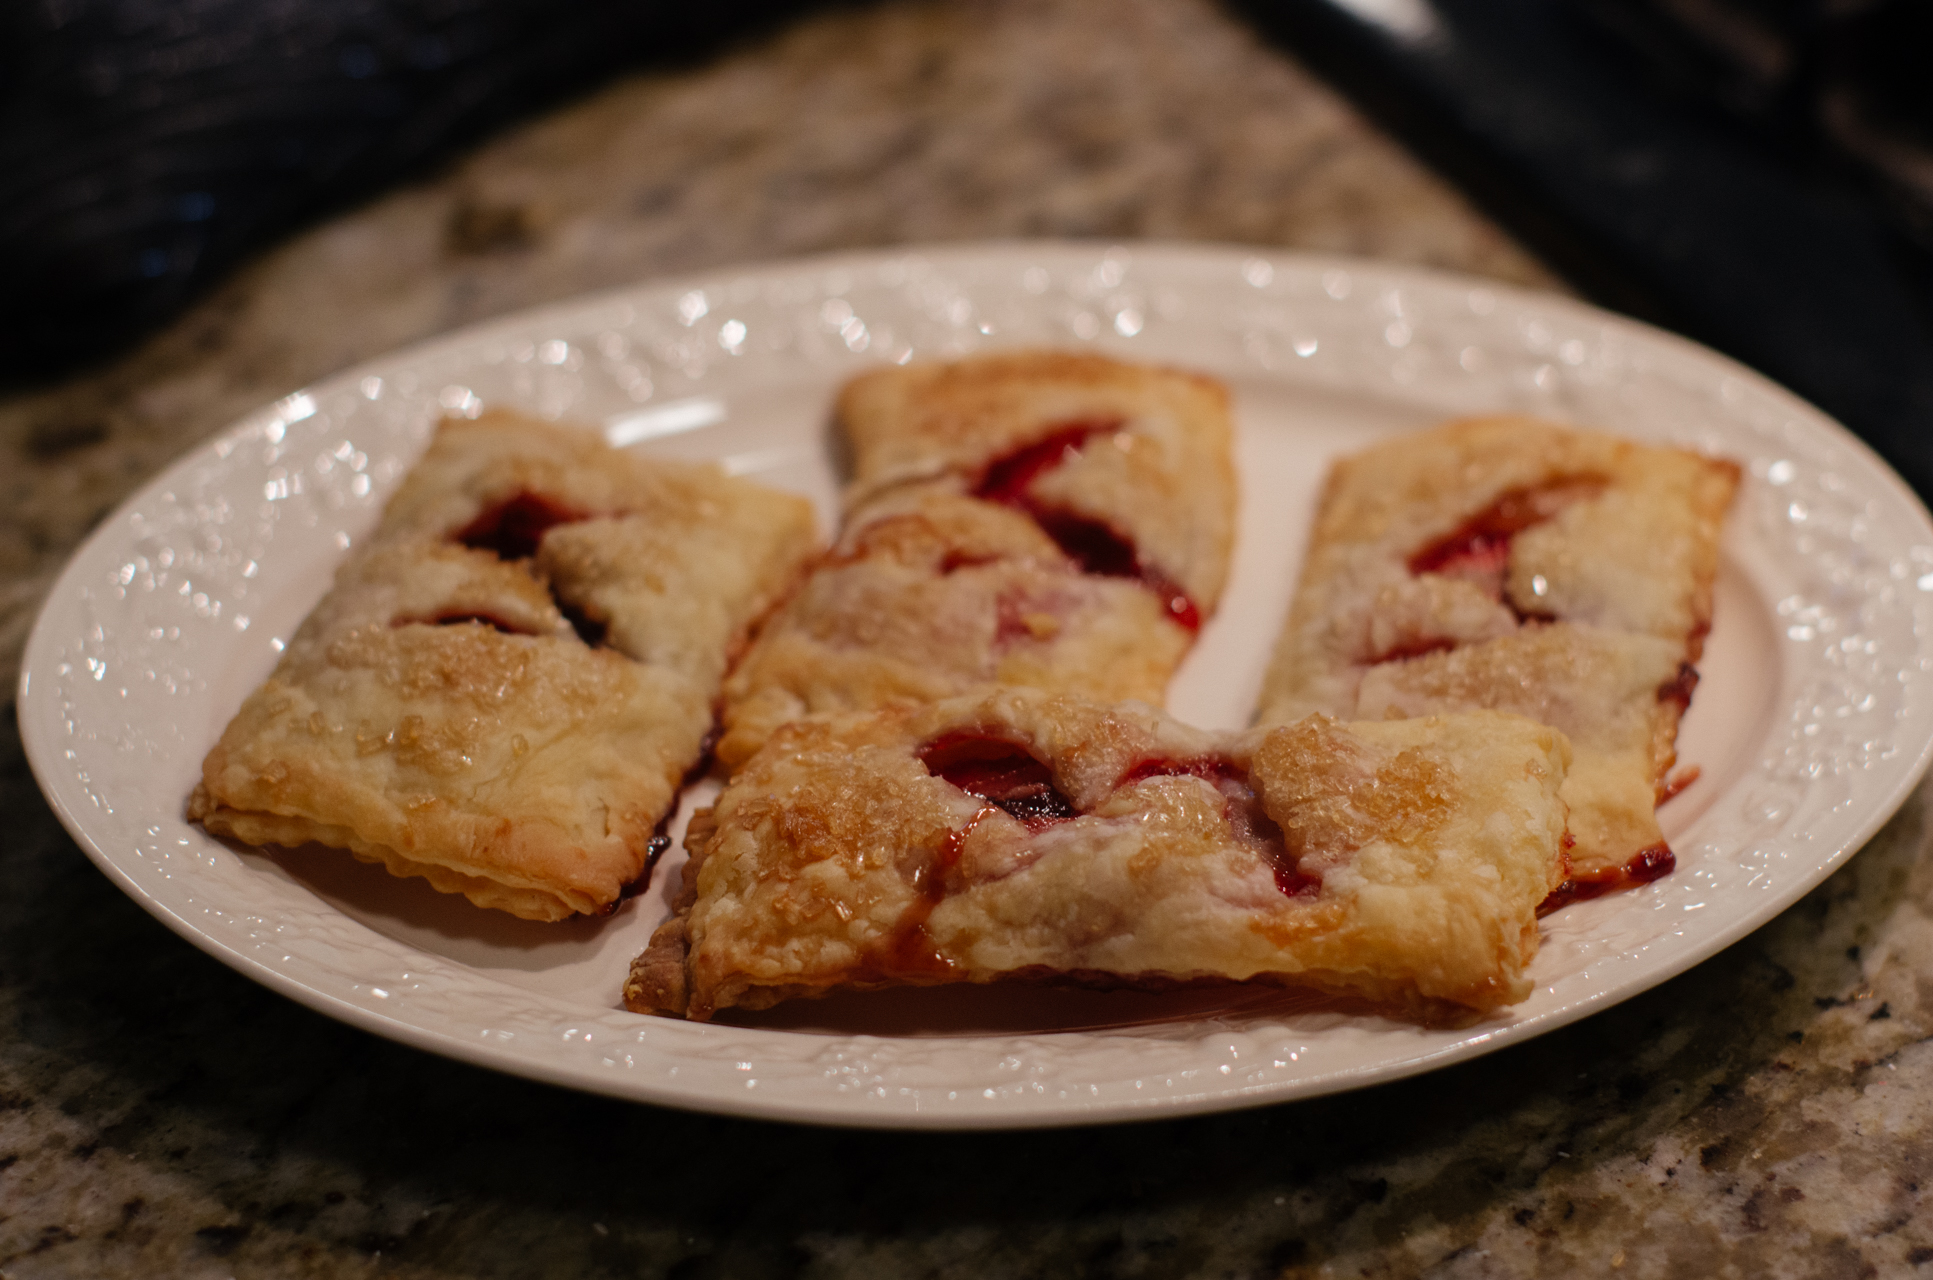 Strawberry Hand Pies:  I had leftover pie dough, which was a godsend; when my girlfriend and I decided we wanted to try this, we didn't have to wade through the process of making the dough (aka putting myself in temptation's way…I still ate some dough, though). These are like Pop-Tarts without the weird box art that suggests Pop-Tarts cannibalize themselves.